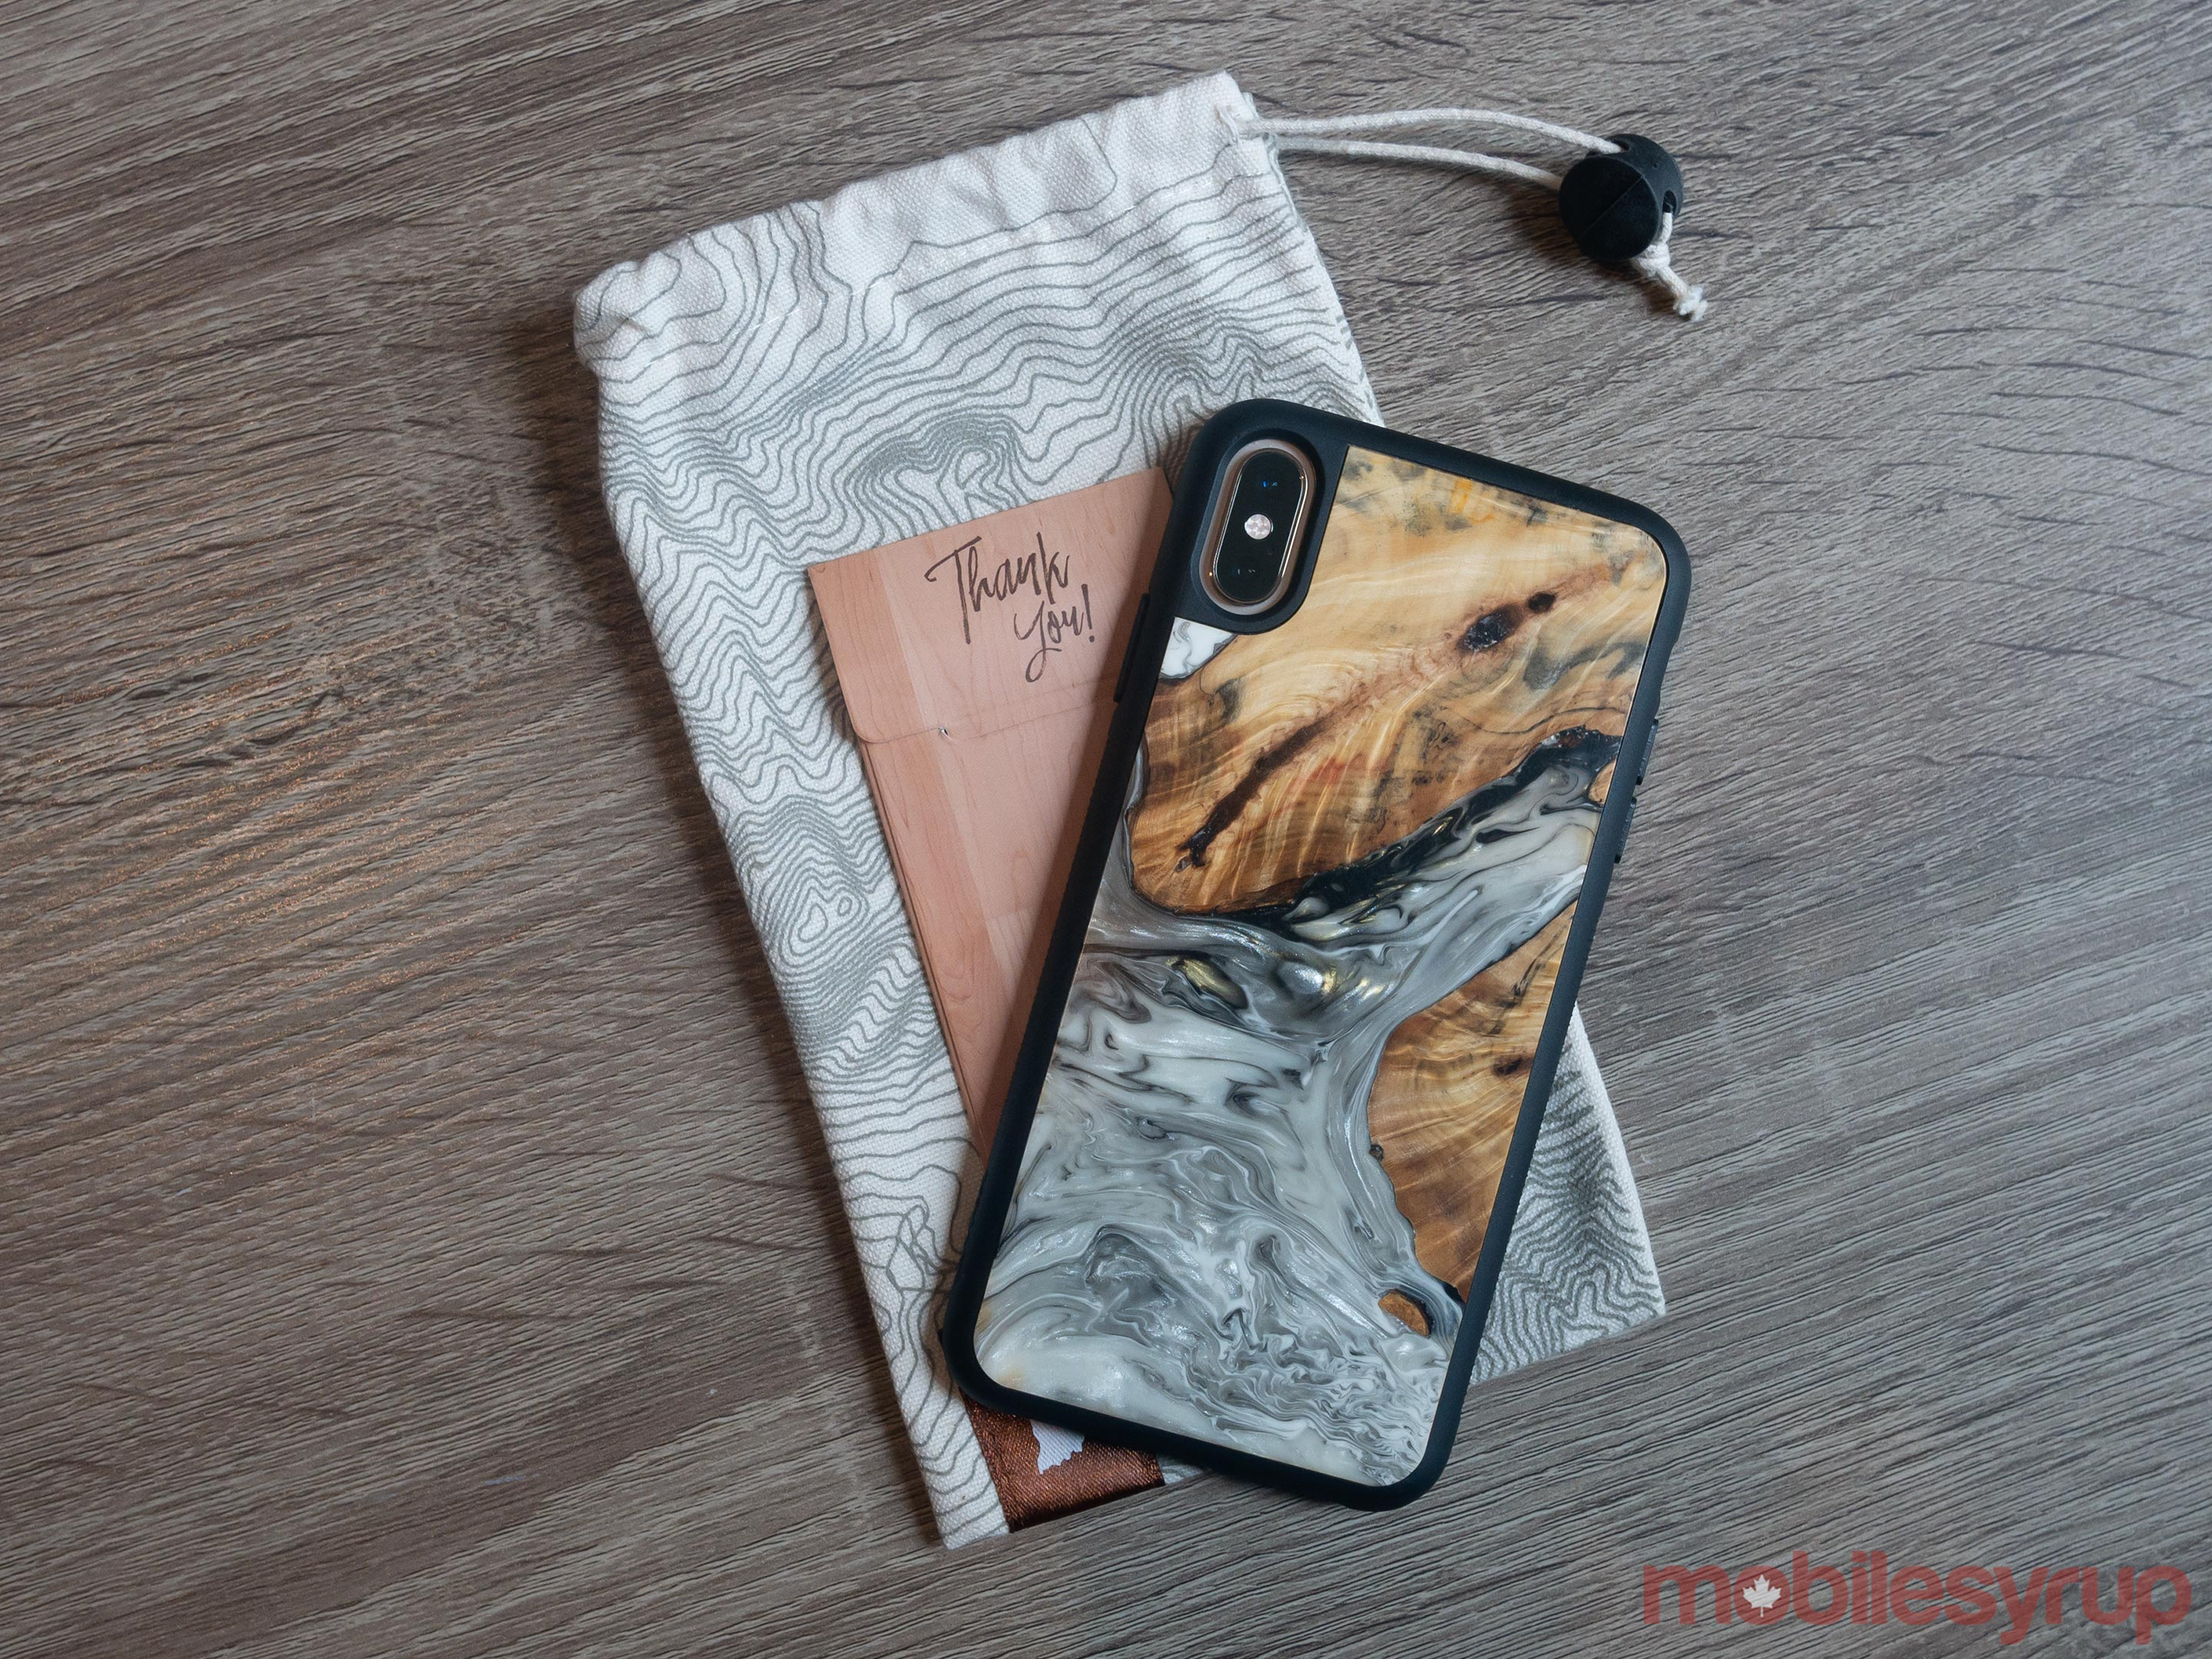 Carved smartphone case rear